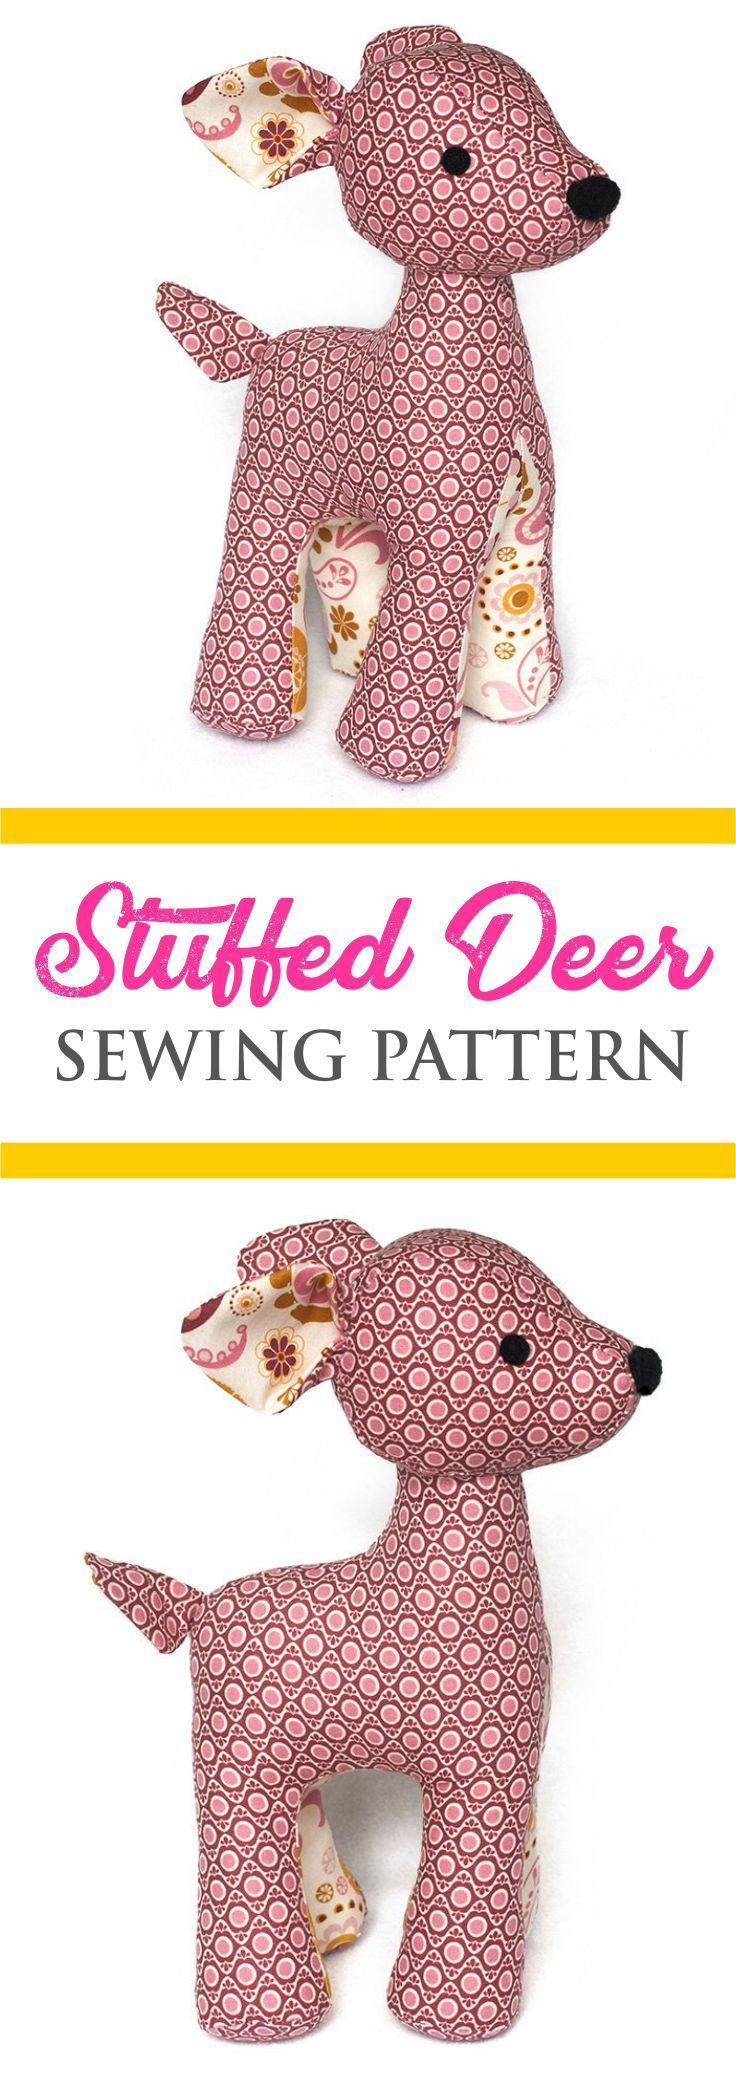 Stuffed Deer Sewing Pattern #sewingprojects